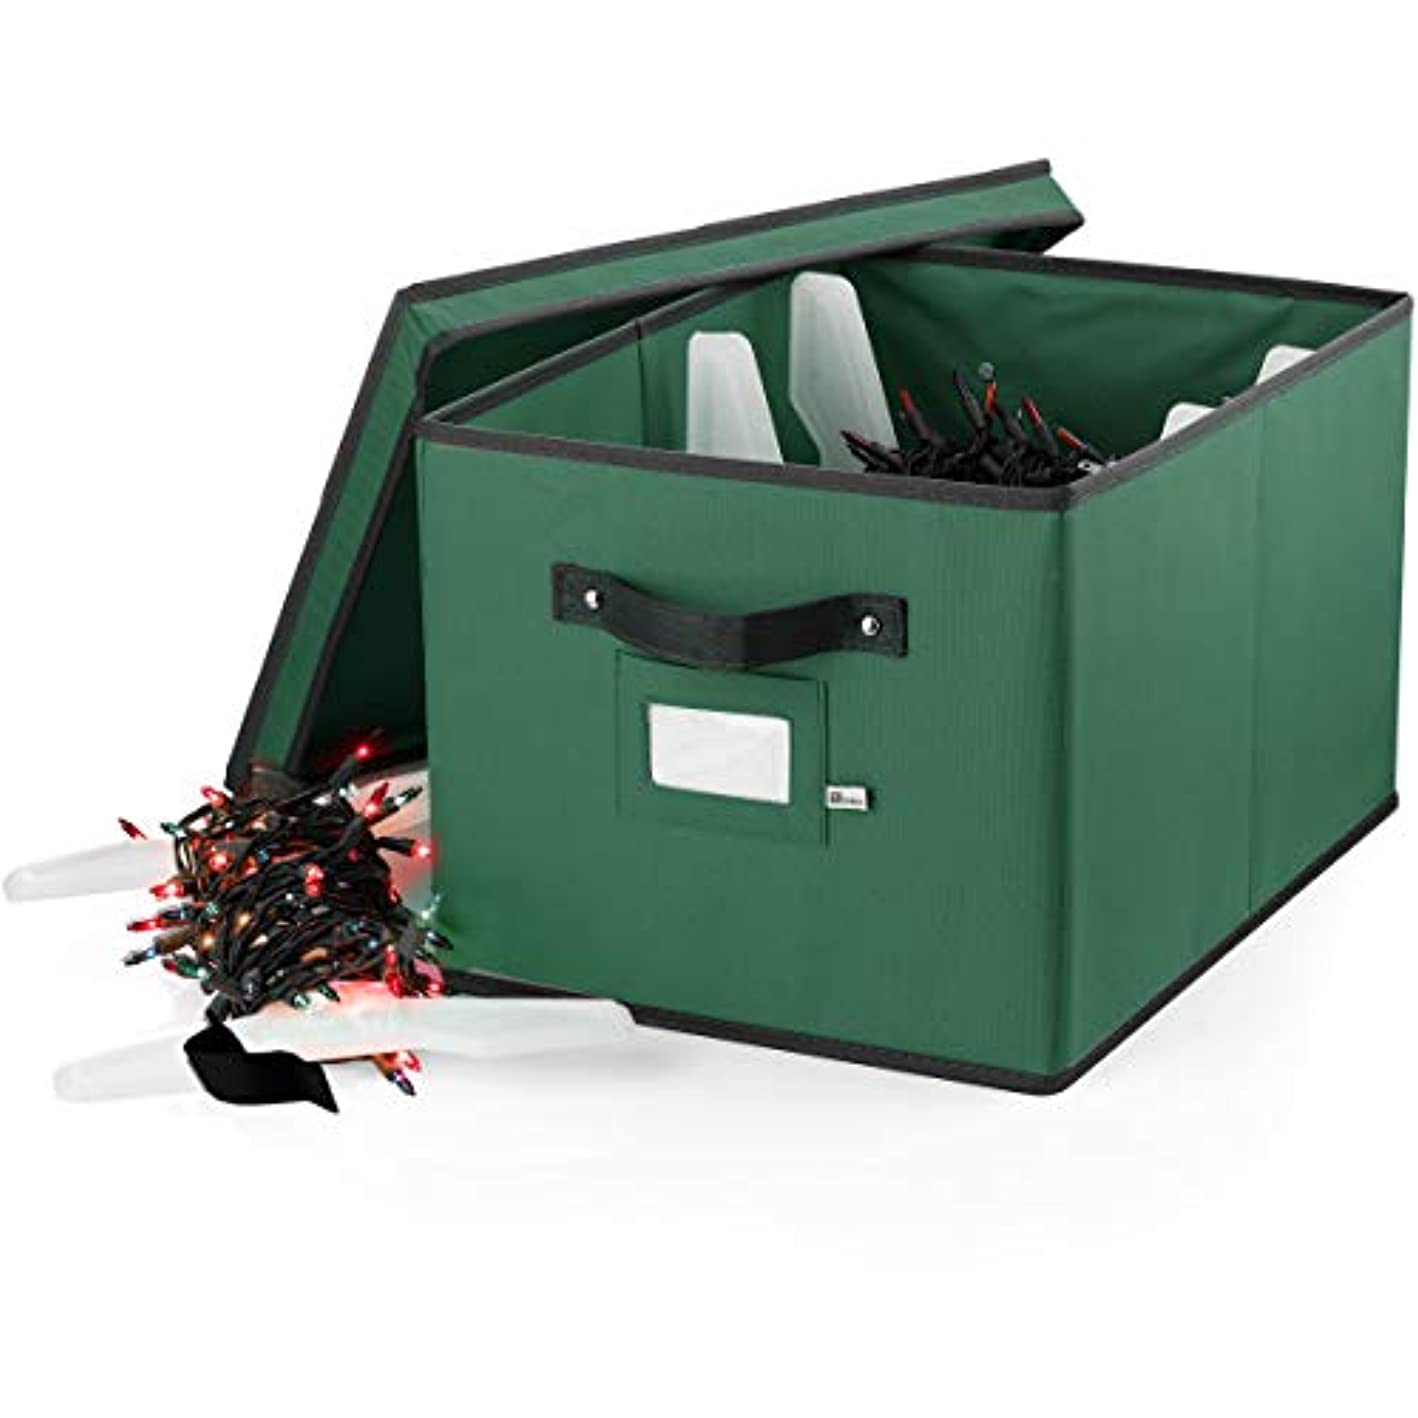 ZOBER Christmas Light Box Storage - Premium 600D Oxford, with 4 Plastic Light Wraps, to Store Up to 800 Holiday Christmas Lights Bulbs, Reinforced Stitched Handles 5 Year Warranty